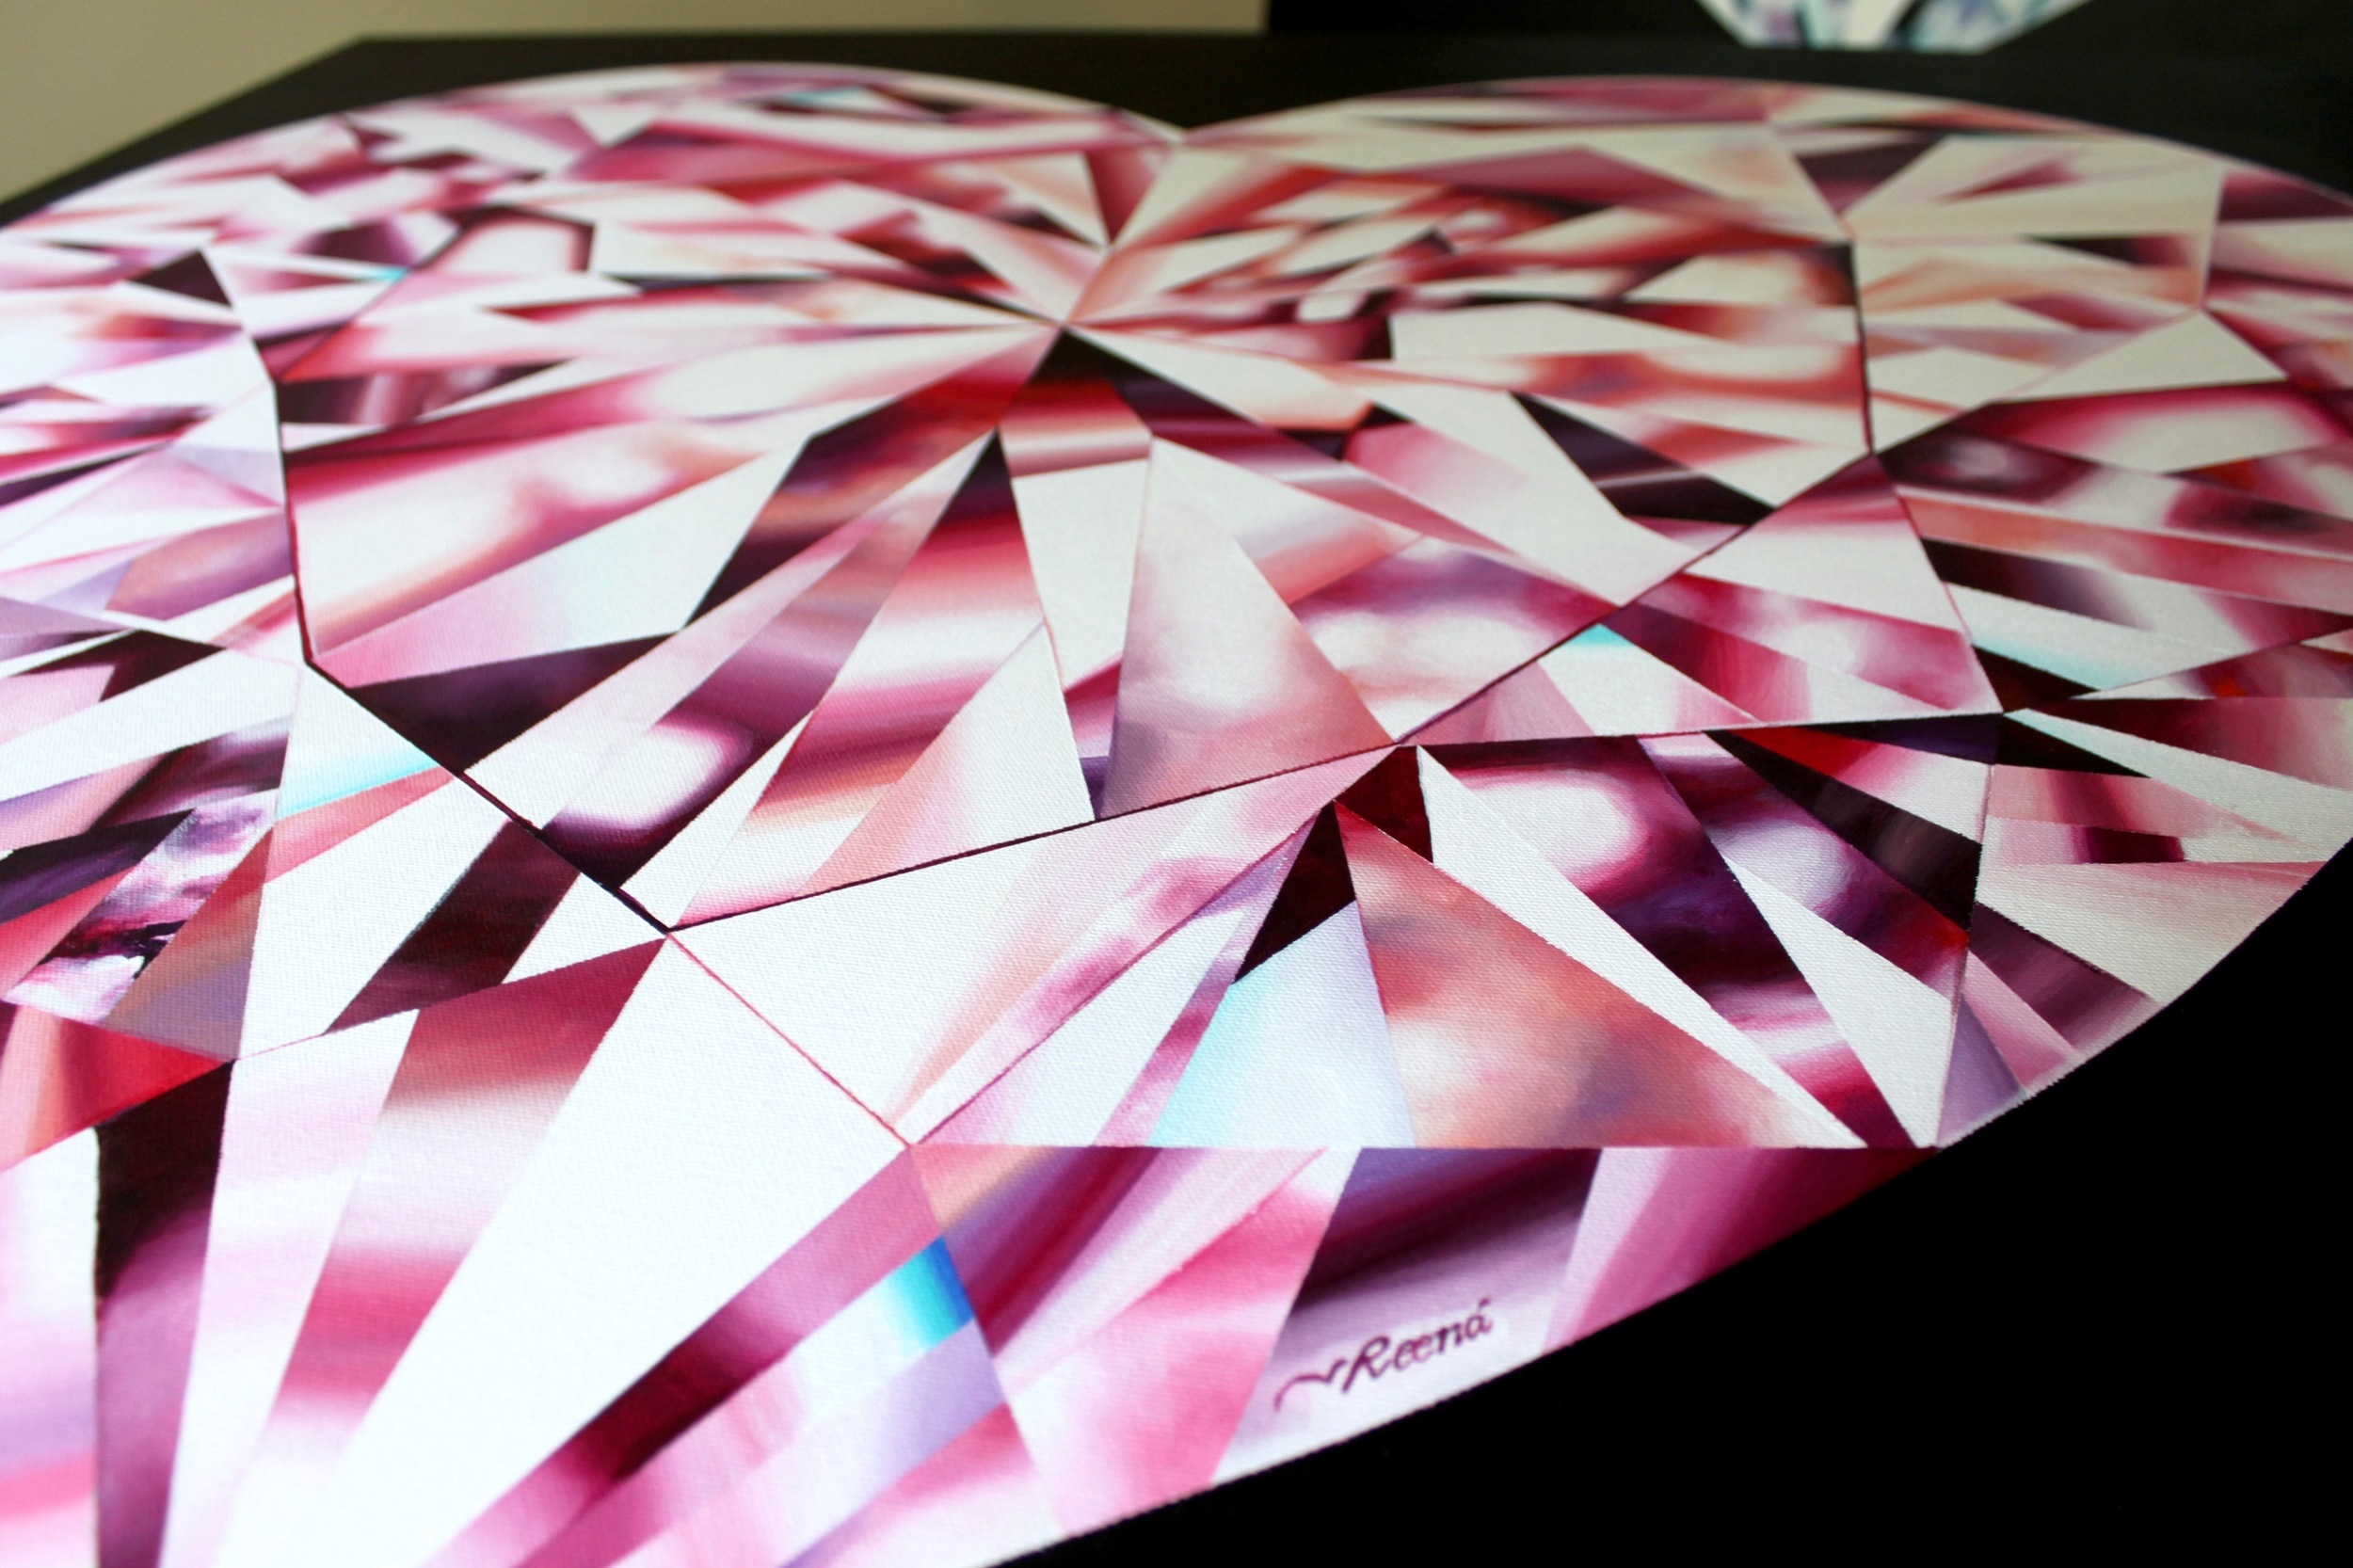 Completed and signed! 'Passionate Heart' - Portrait of a Pink Heart-Shaped Diamond. 36 x 36 inches. Acrylic on Canvas. ©Reena Ahluwalia